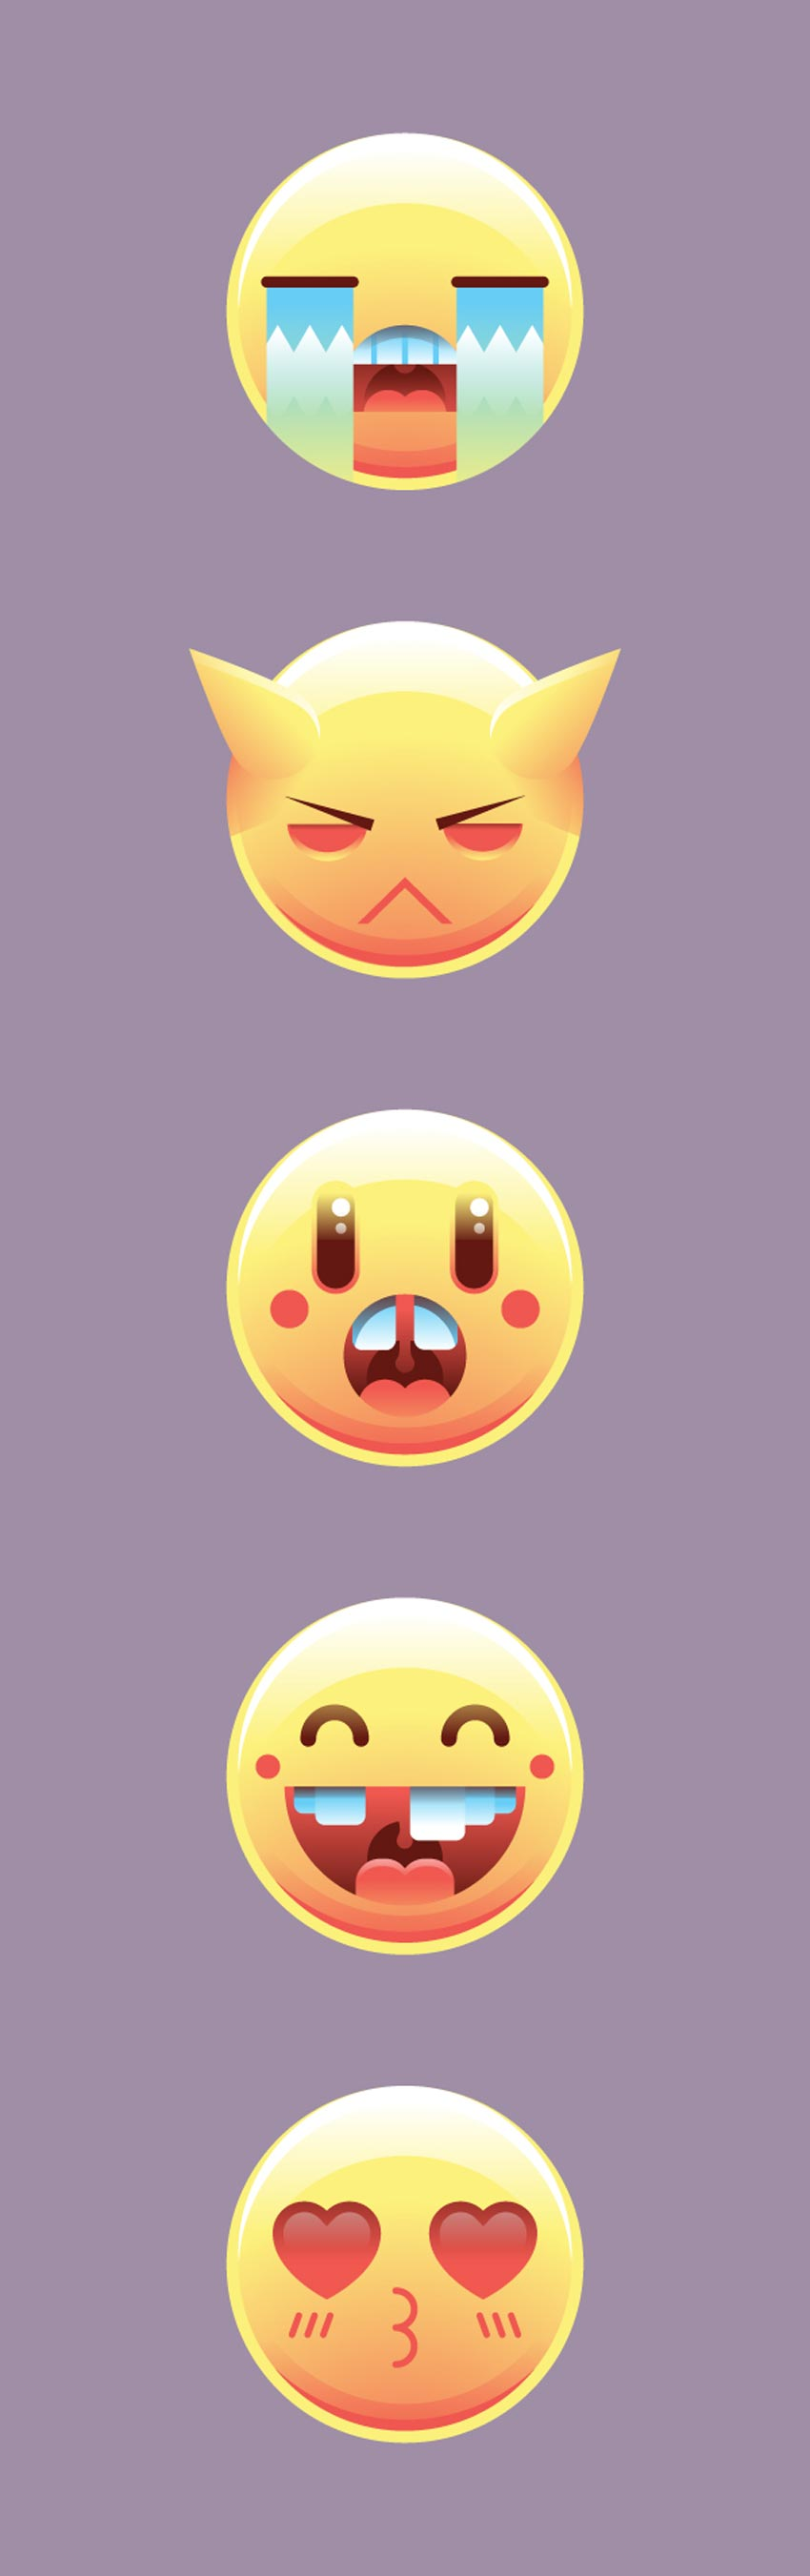 How to Create a Set of Emoticons in Adobe Illustrator